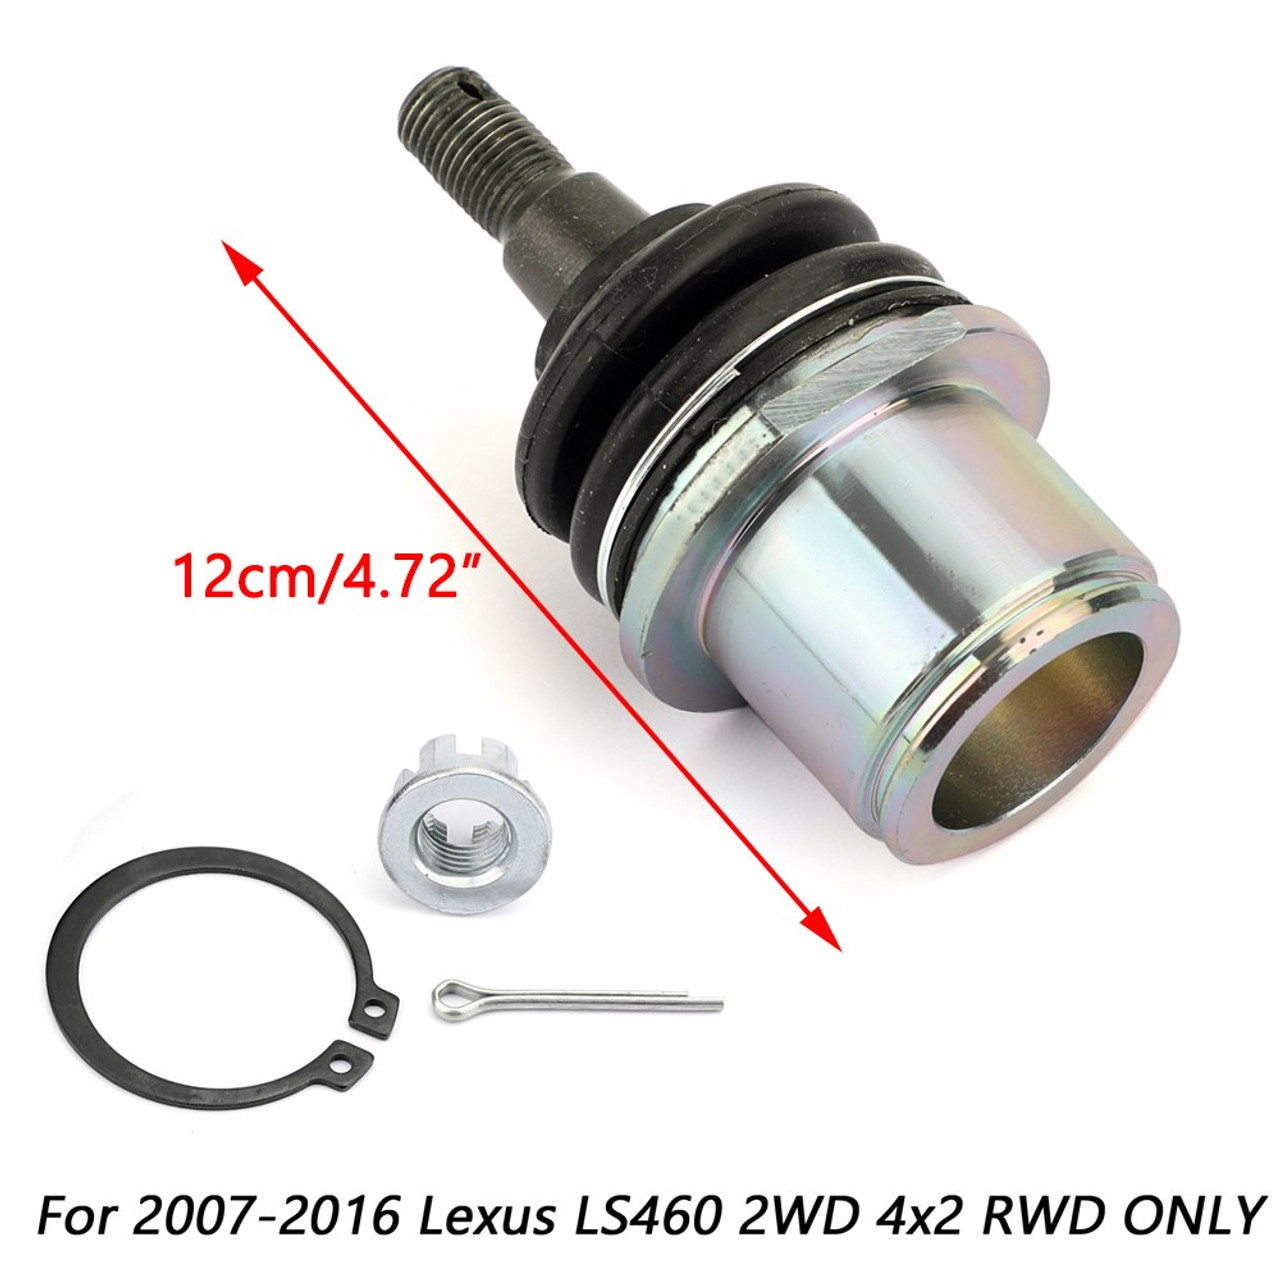 Front Lower Knuckle Spindle Ball Joint For Lexus LS460 2WD 4x2 RWD 16-17 Black